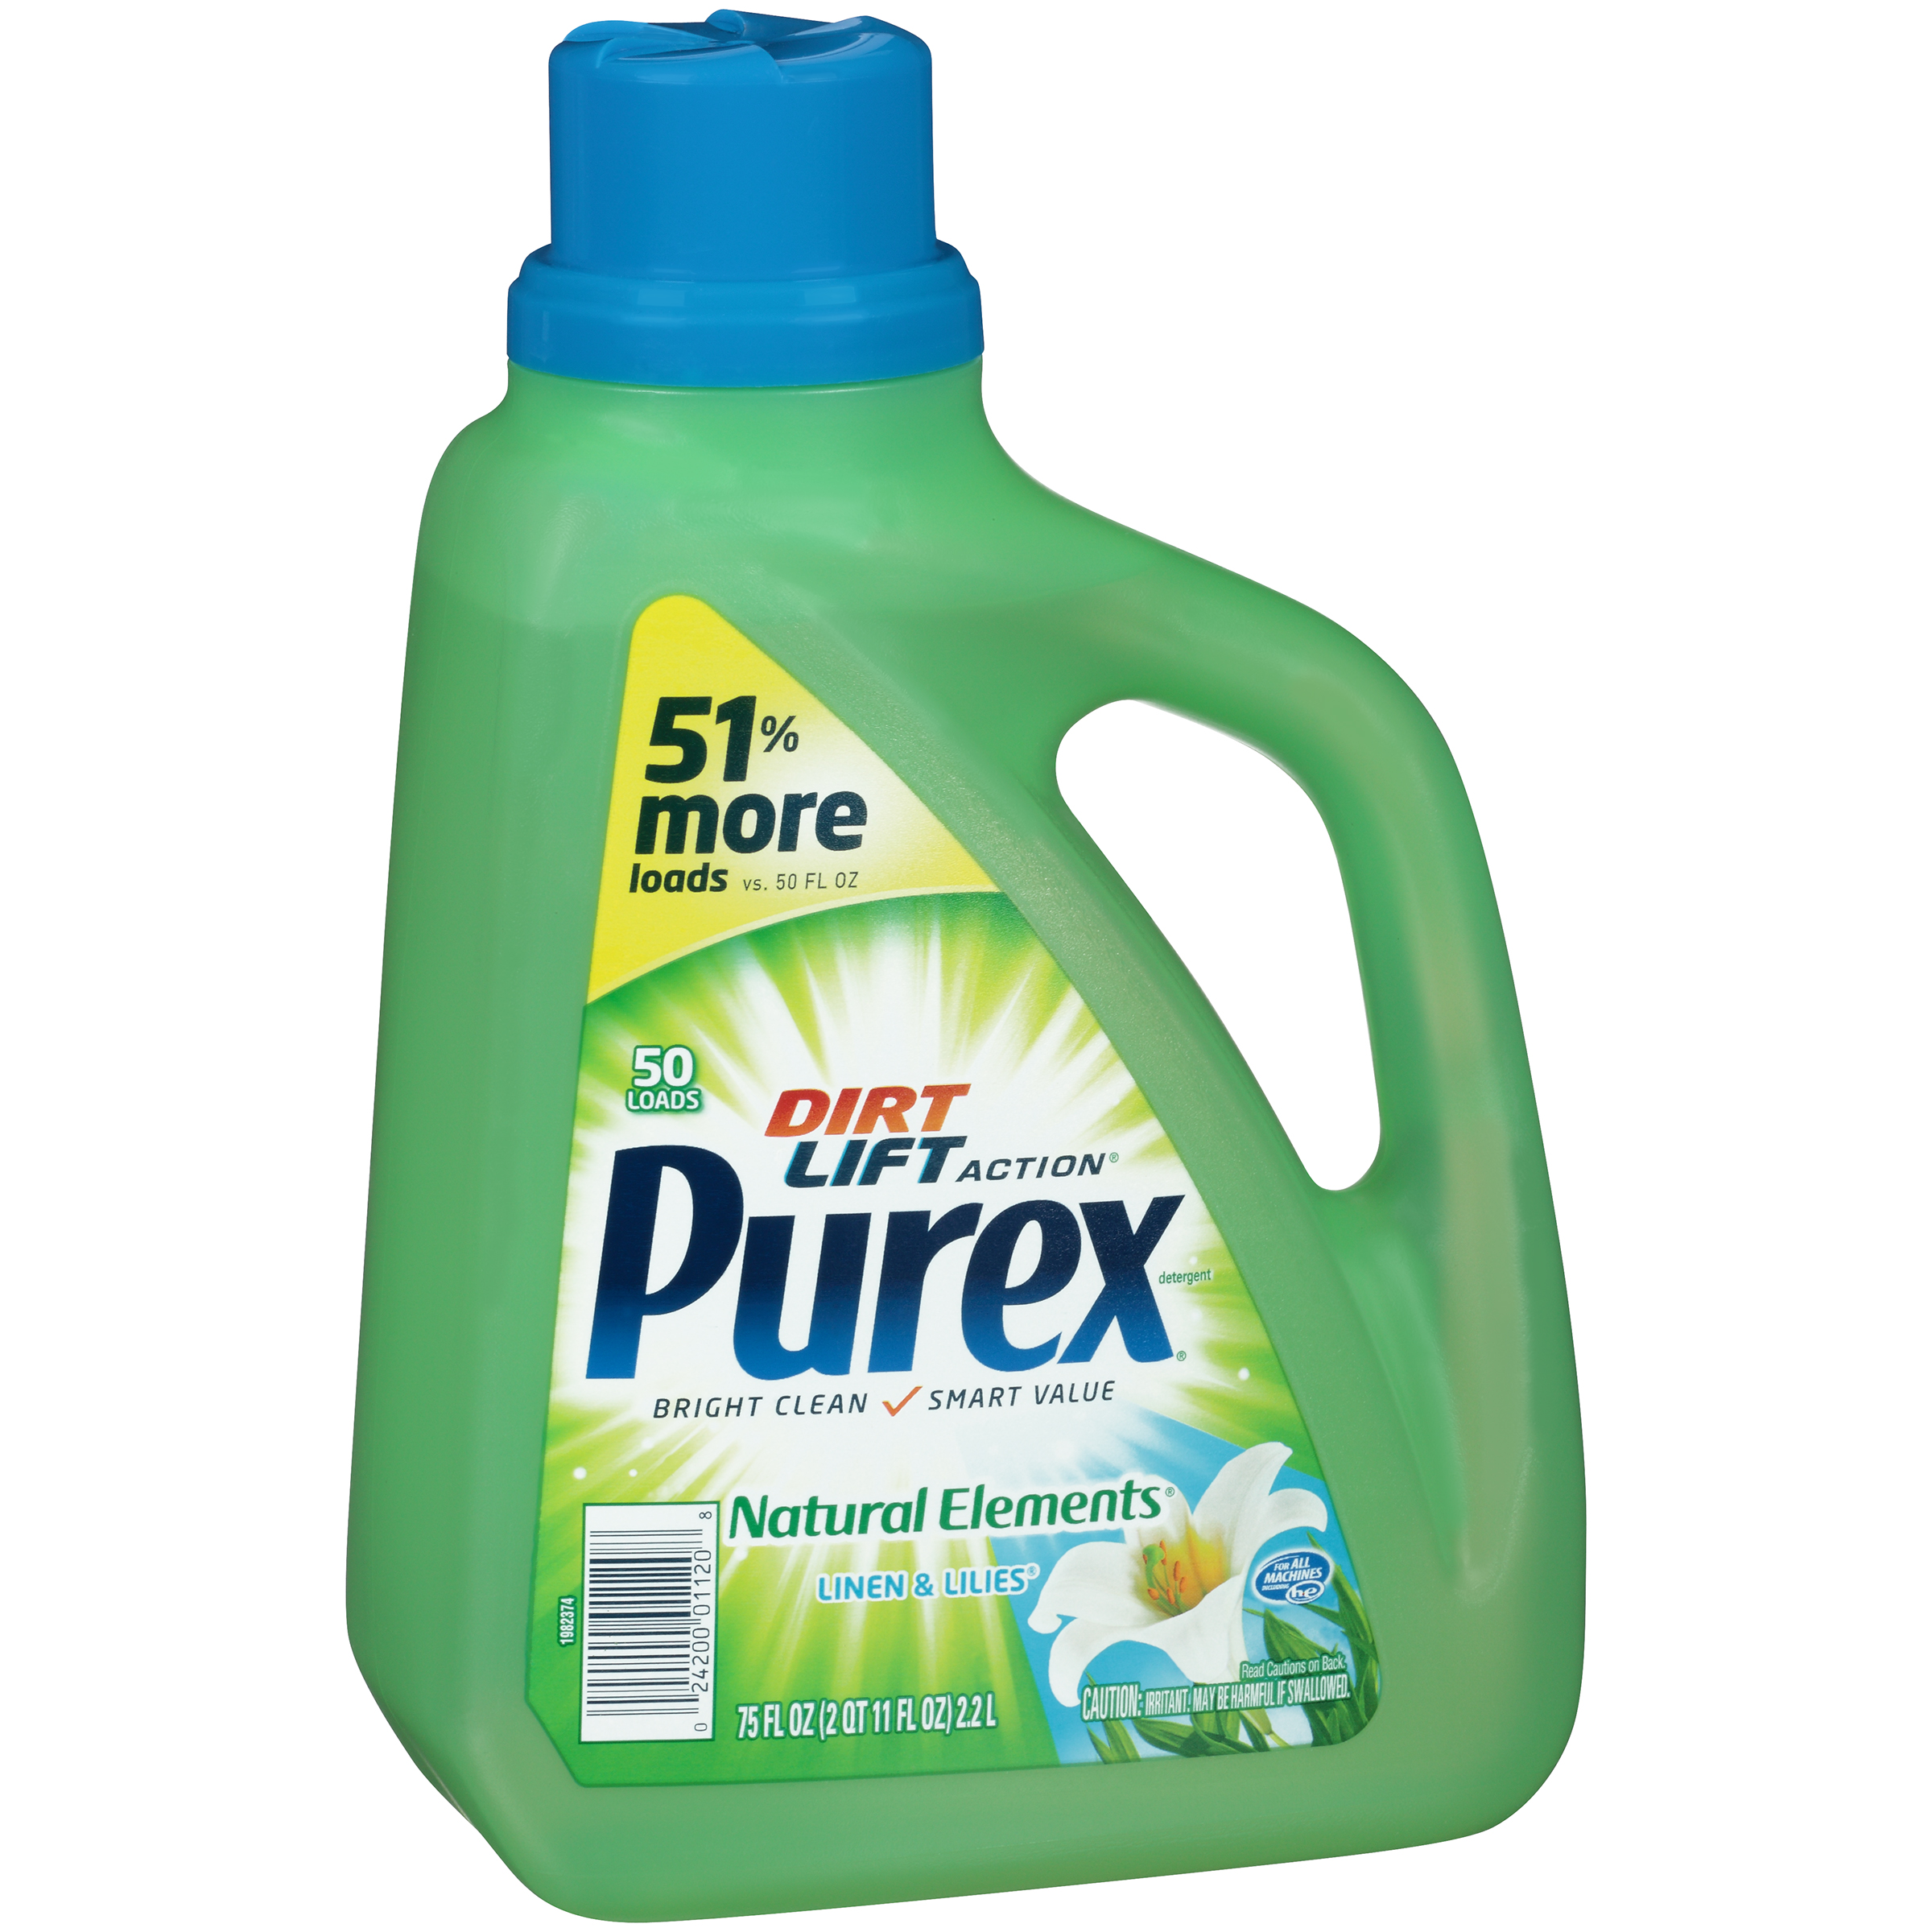 PUREX Natural Elements Linen & Lilies Laundry Detergent 75 FL OZ JUG